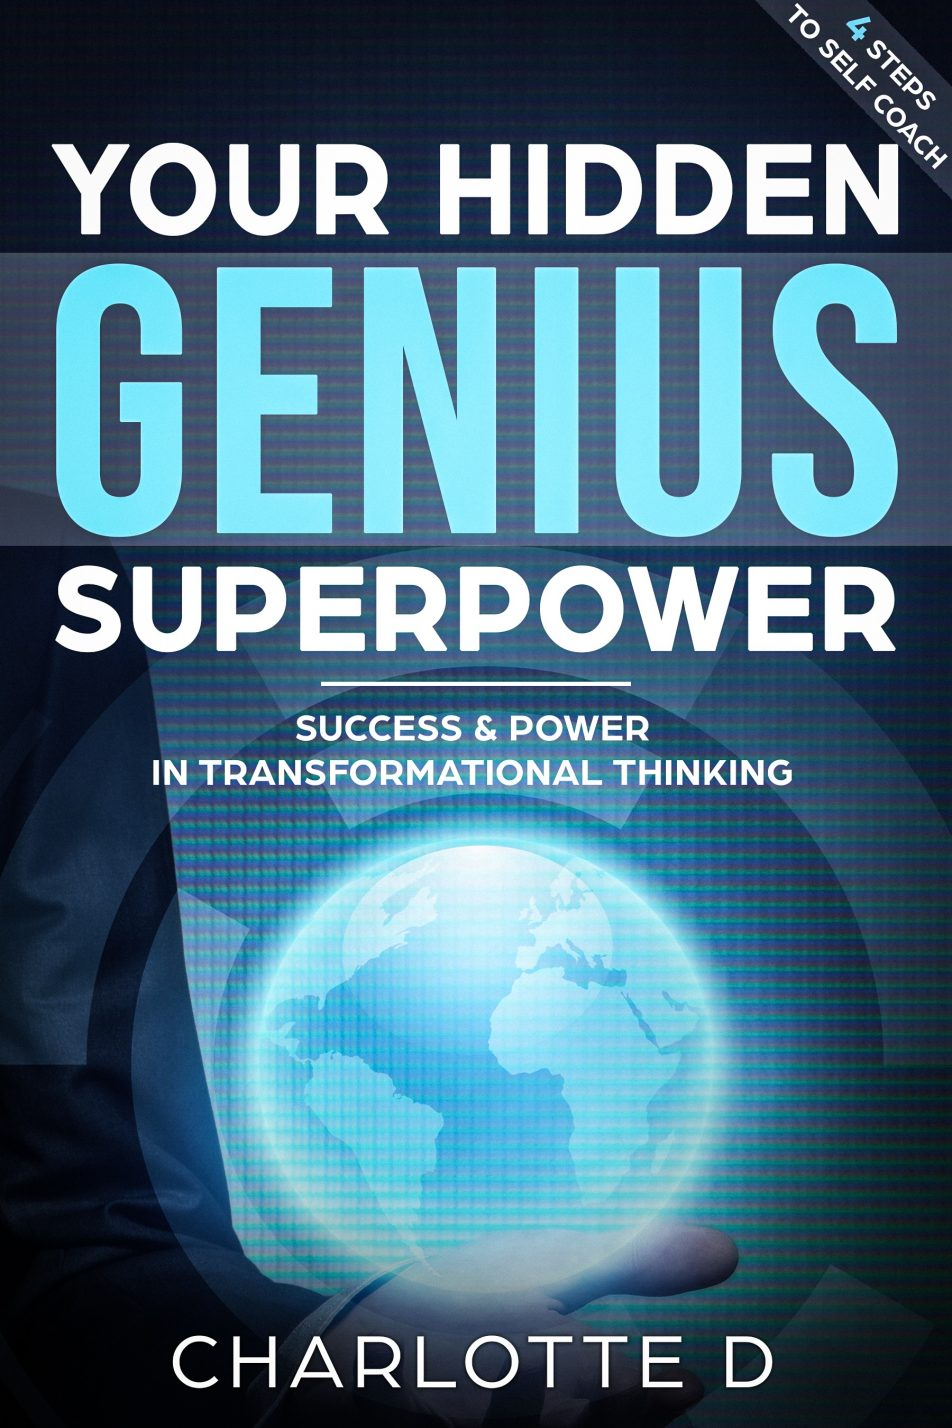 Success and Power in Transformational Thinking